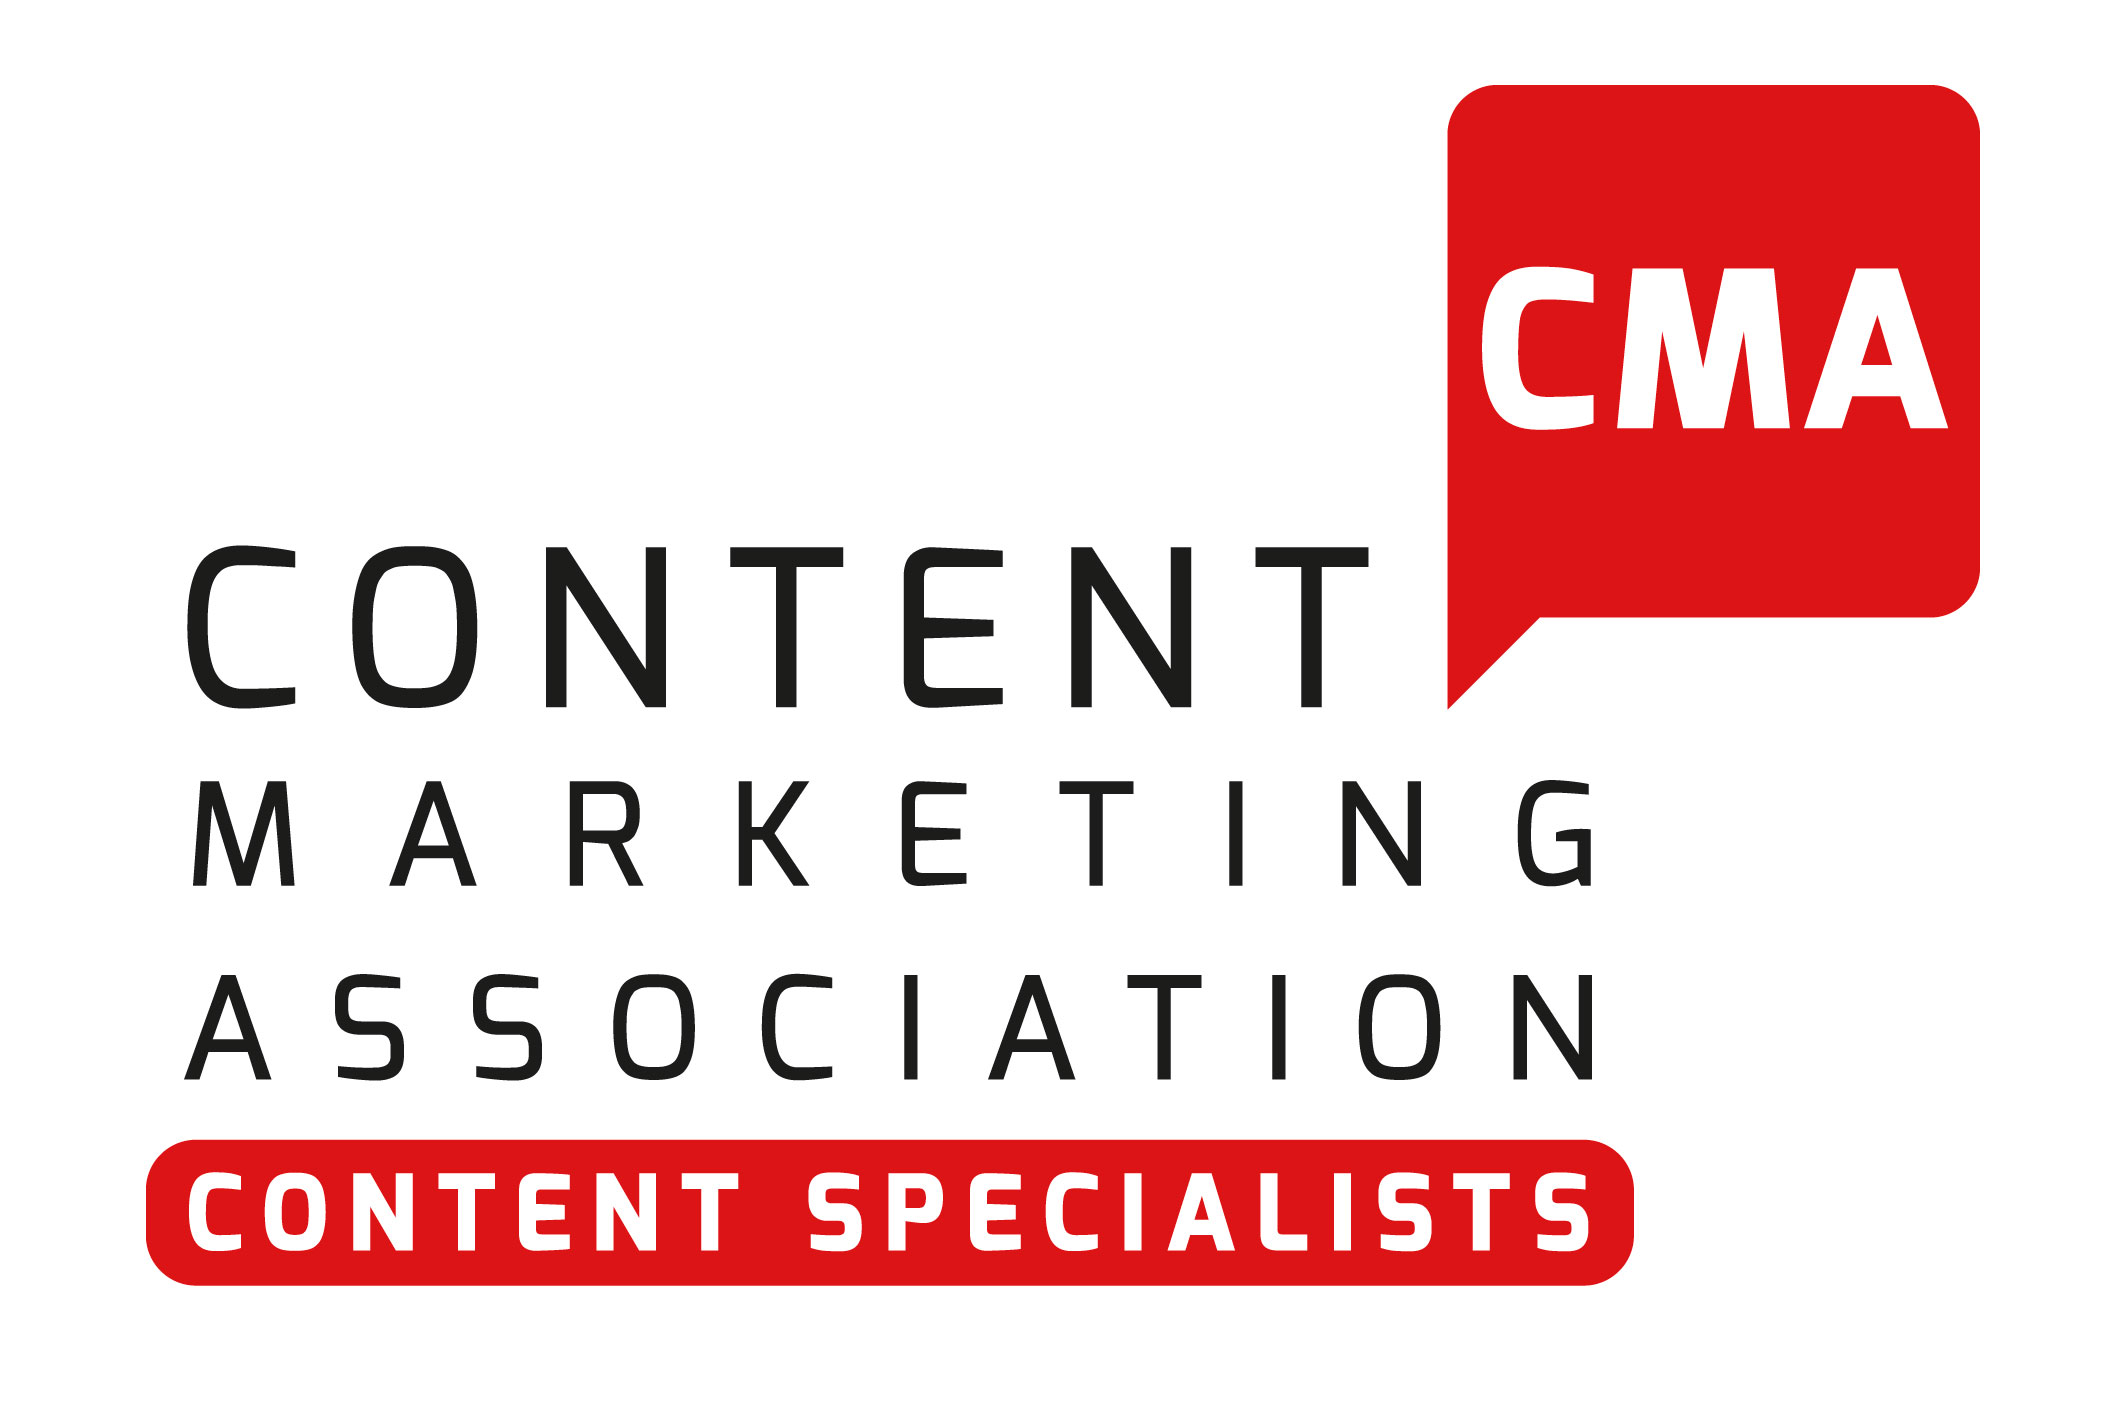 Content Marketing Association